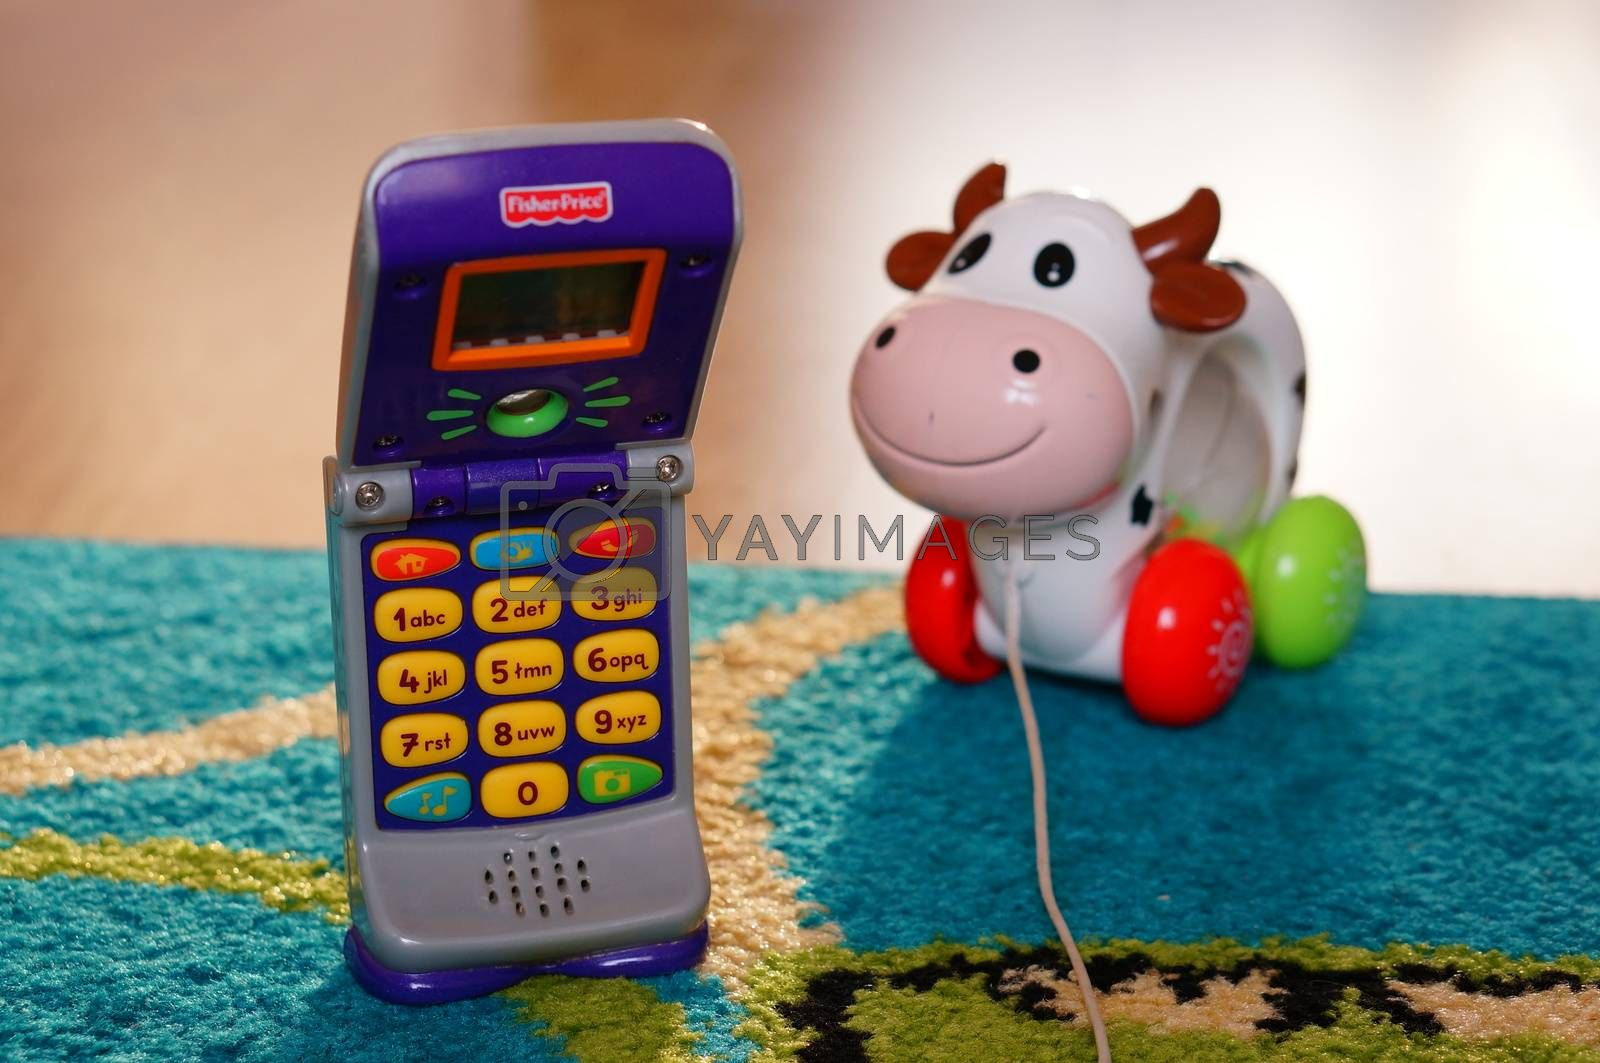 POZNAN, POLAND - AUGUST 20, 2015: Fisher Price plastic toy phone and toy cow in background